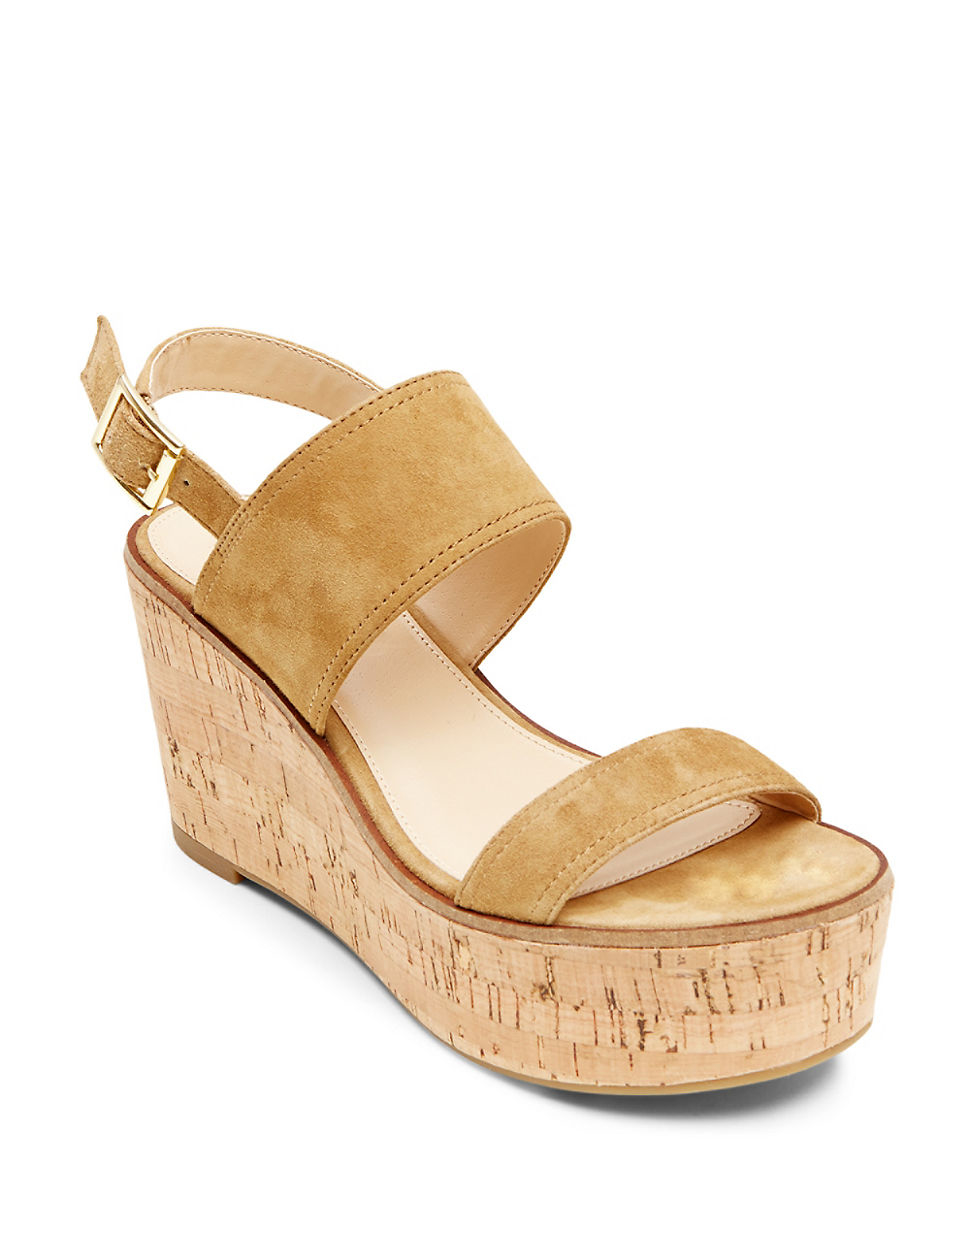 9b0c8e4b00d4 Steve Madden Catlyn Suede Platform Wedge Sandals in Natural - Lyst